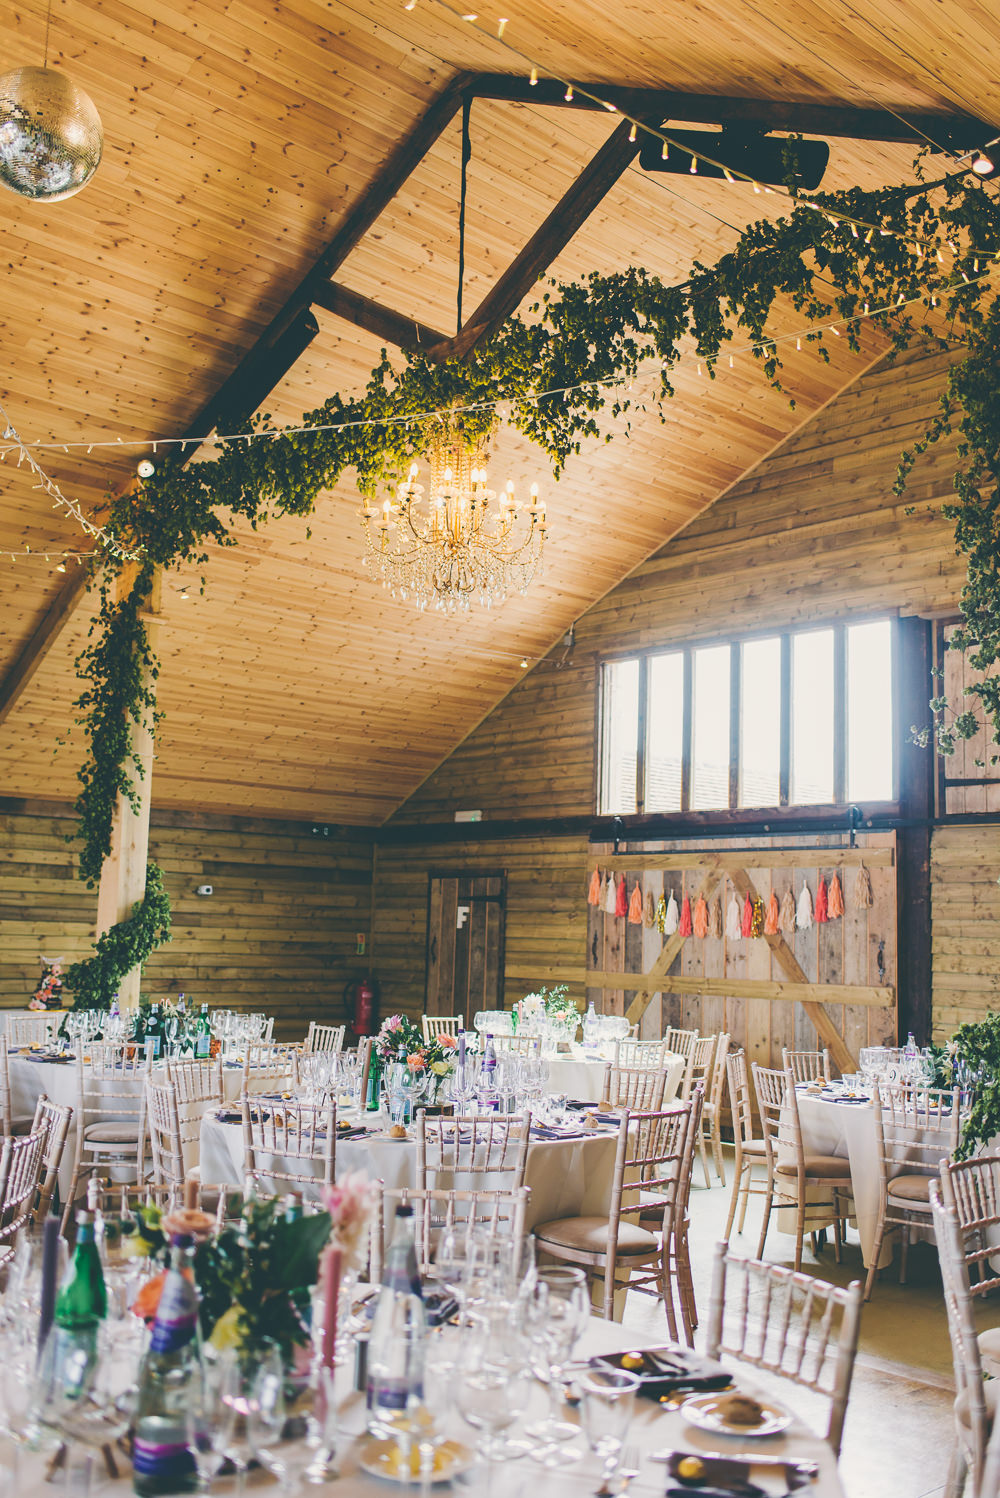 Barn Decor Decoration Fairy Lights Greenery Foliage High Billinghurst Farm Wedding Larissa Joice Photography